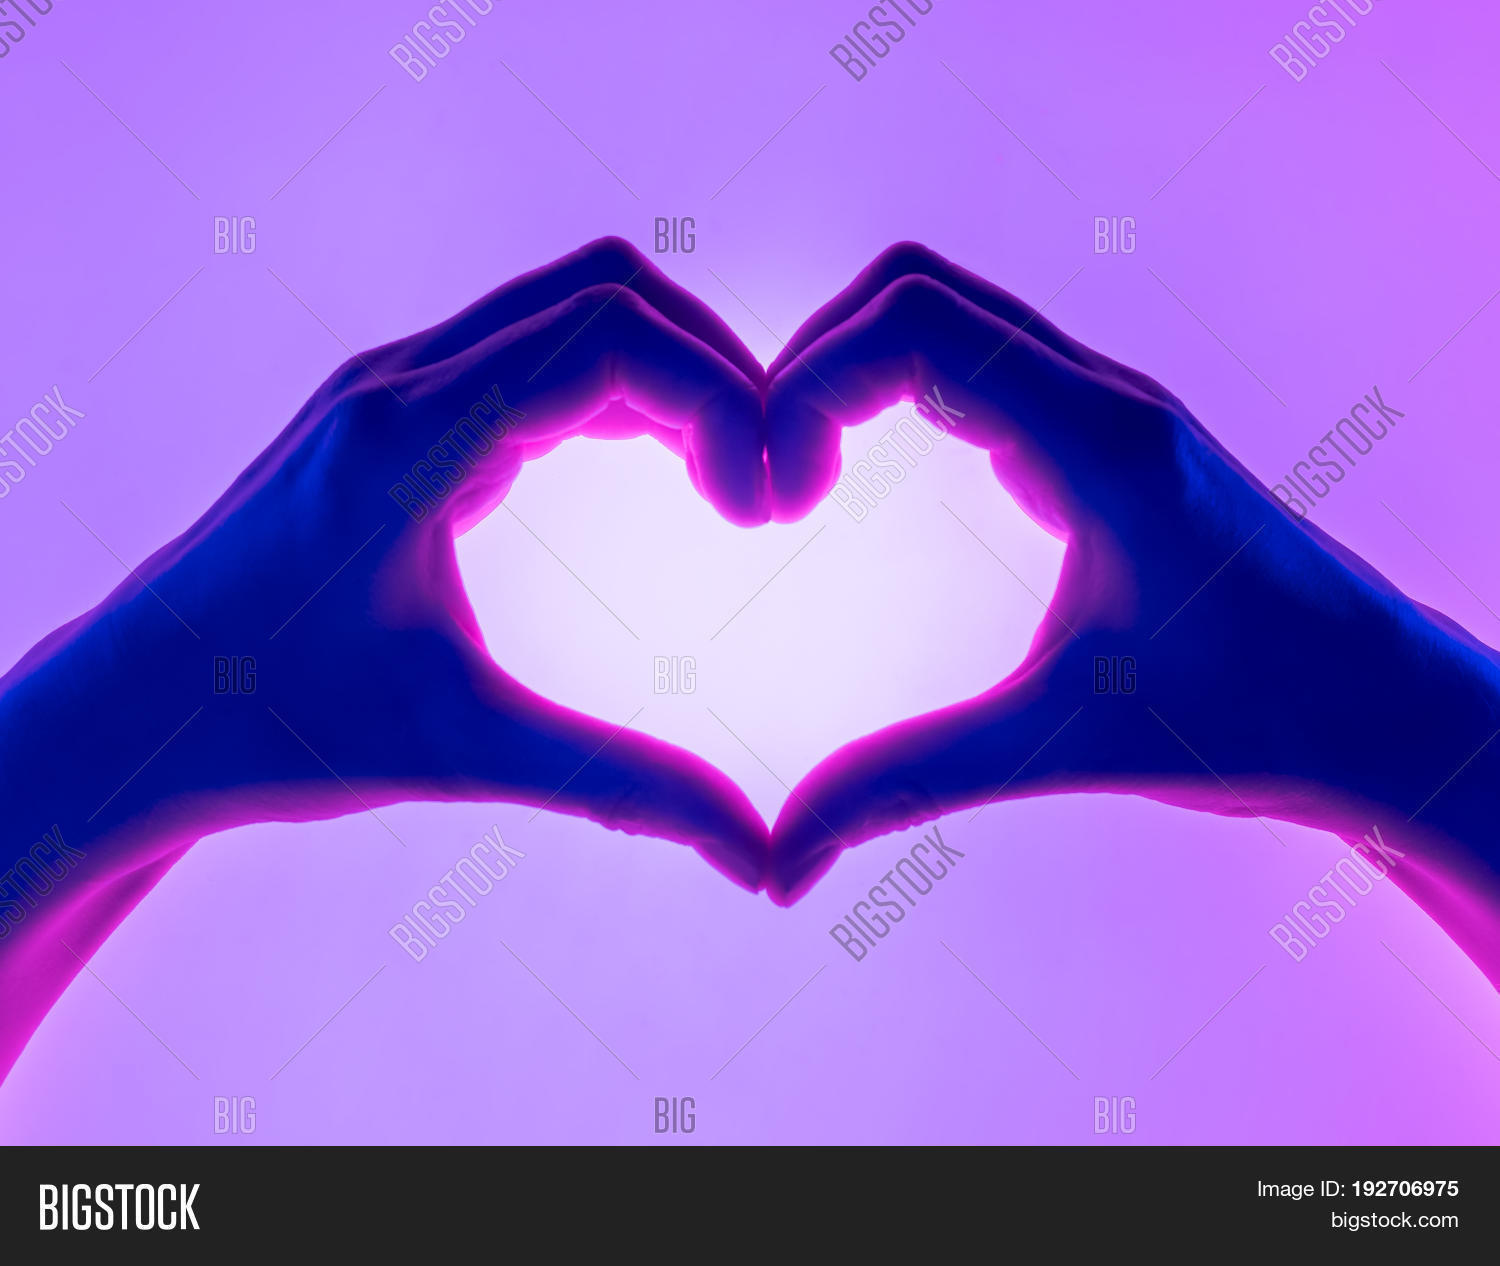 Hands Form Heart Image Photo Free Trial Bigstock